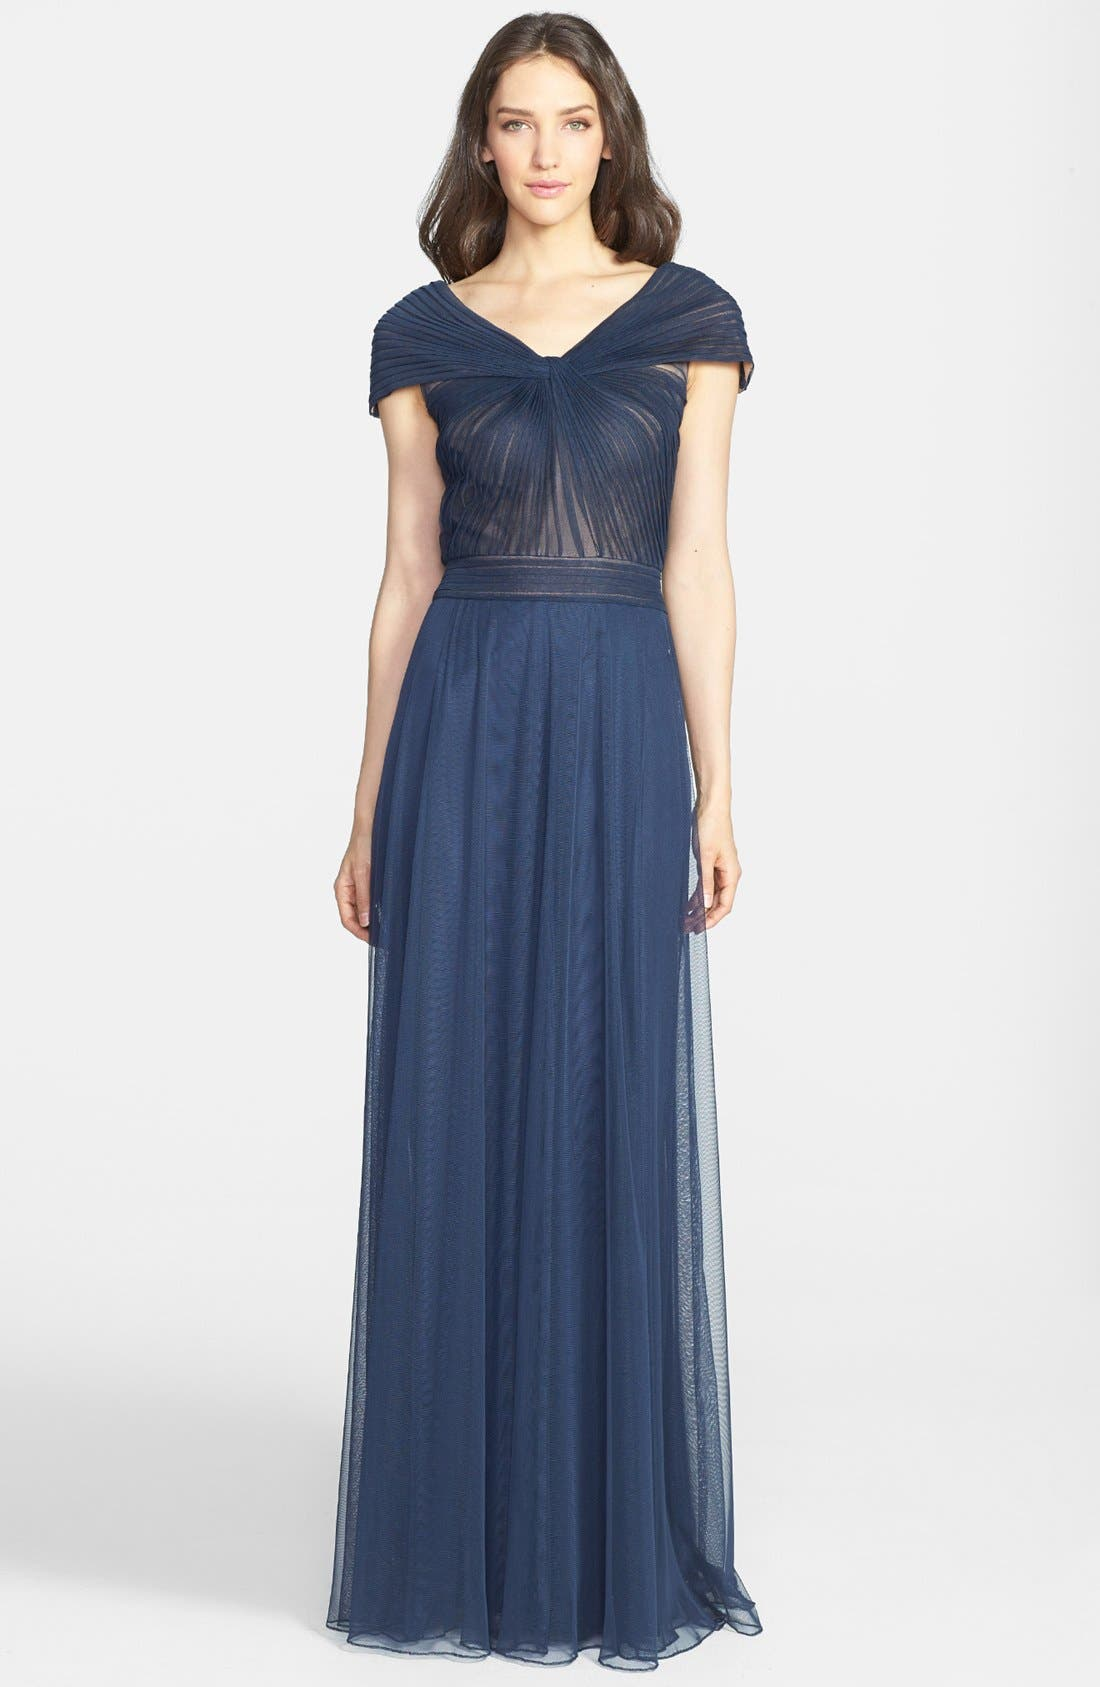 Portrait Collar Pleated Mesh Gown,                         Main,                         color, Navy/ Navy